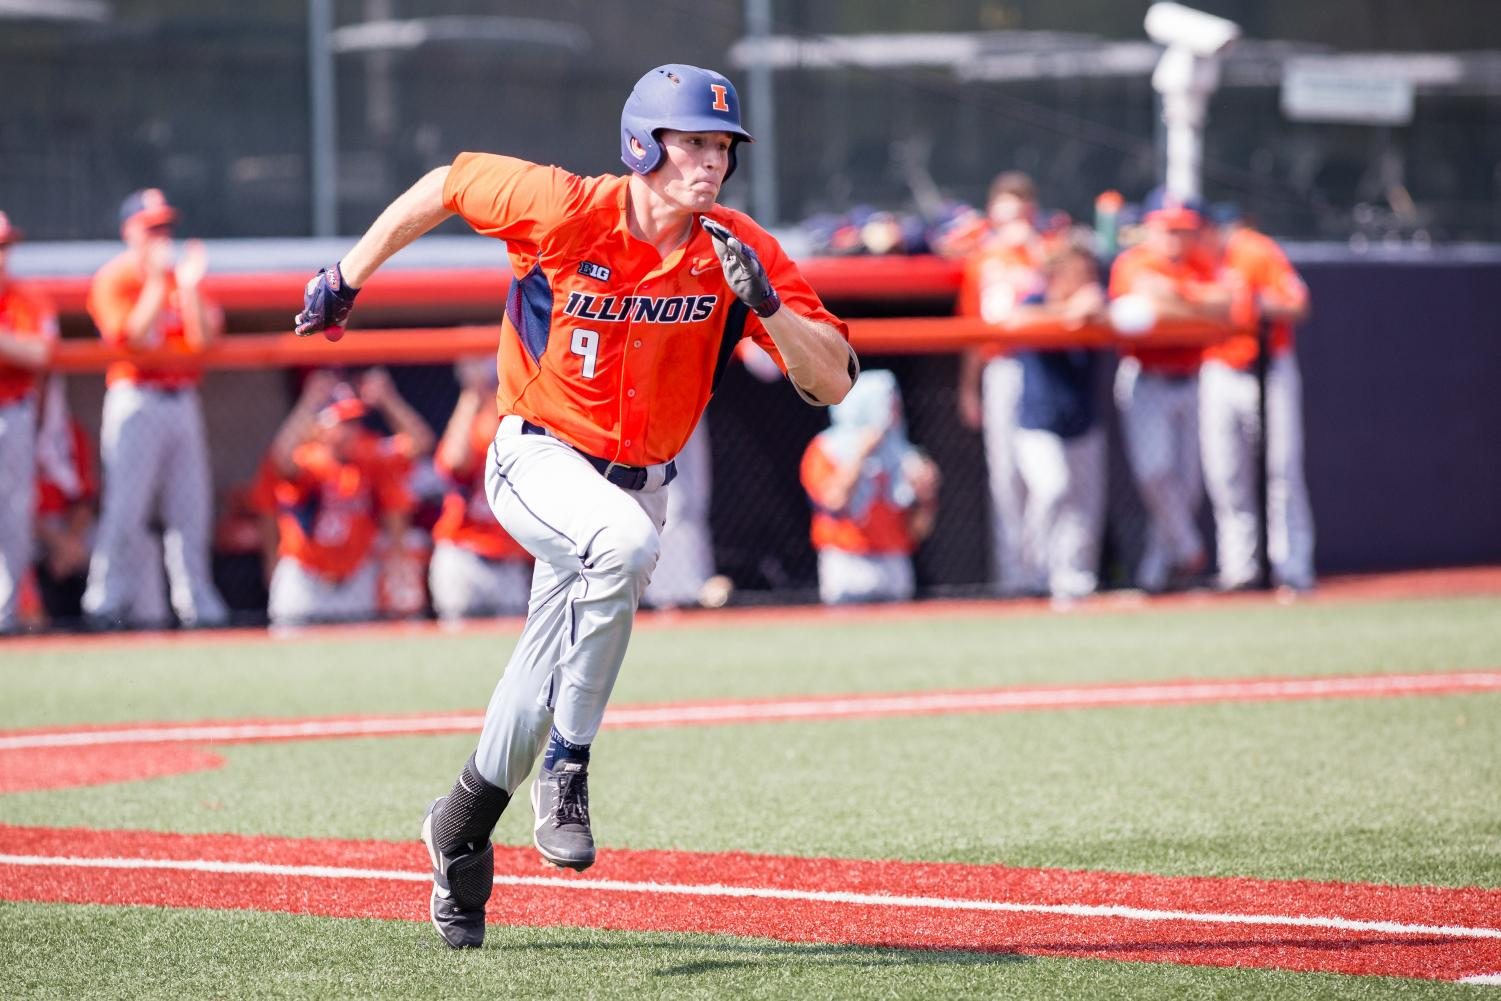 Illinois infielder Bren Spillane (9) runs to first during the game against Indiana State at Illinois Field on Saturday, September 24.